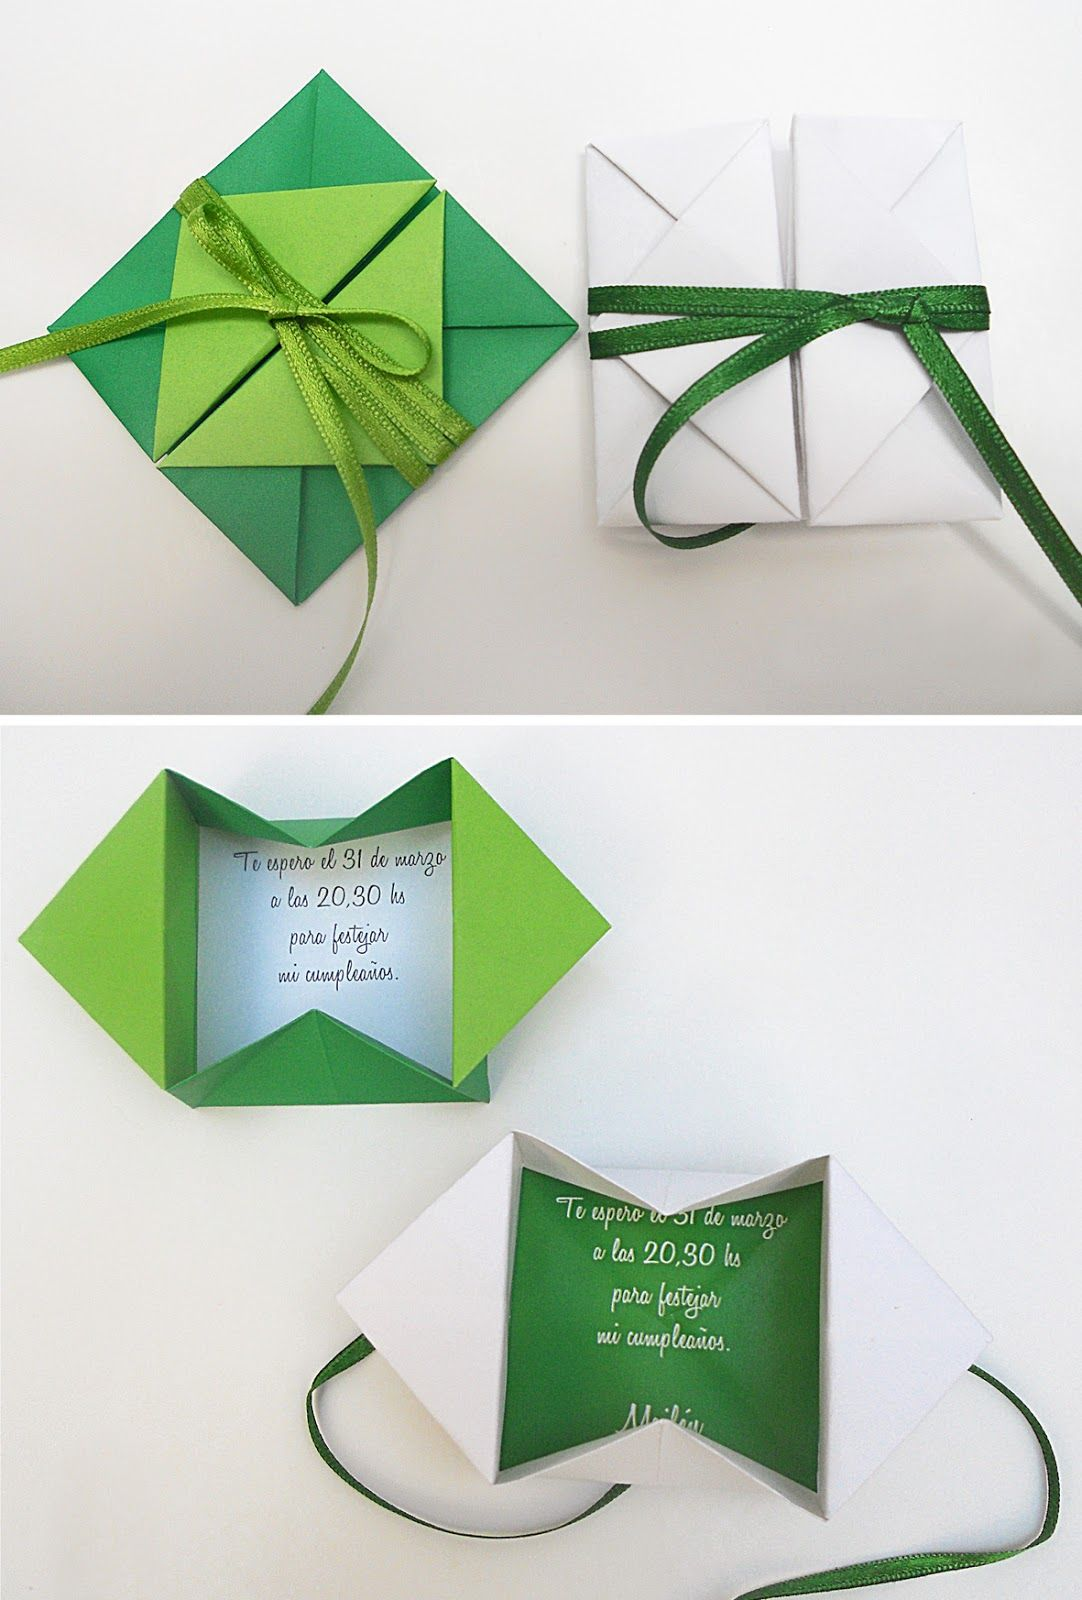 The envelope origami - the original design of the gift 74